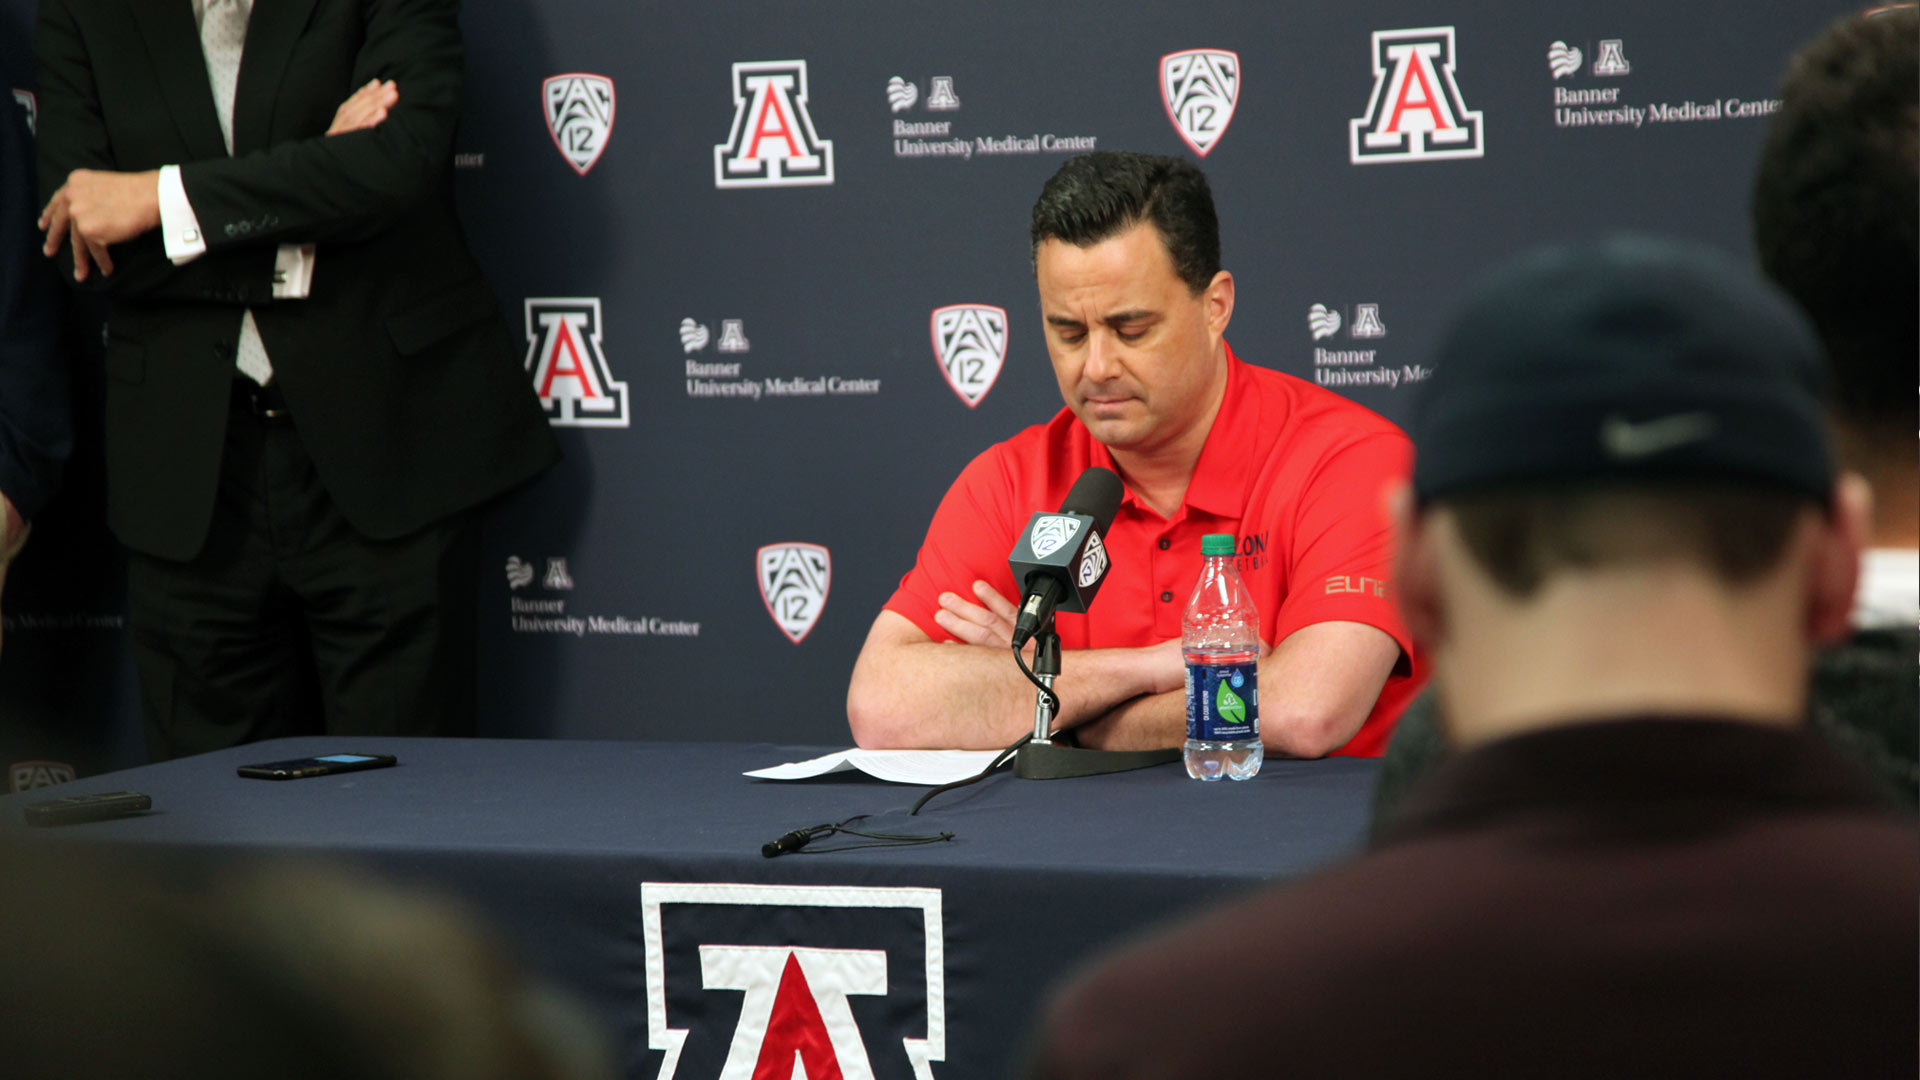 UA basketball coach Sean Miller speaks at a press conference, Thursday, March 1, 2018.